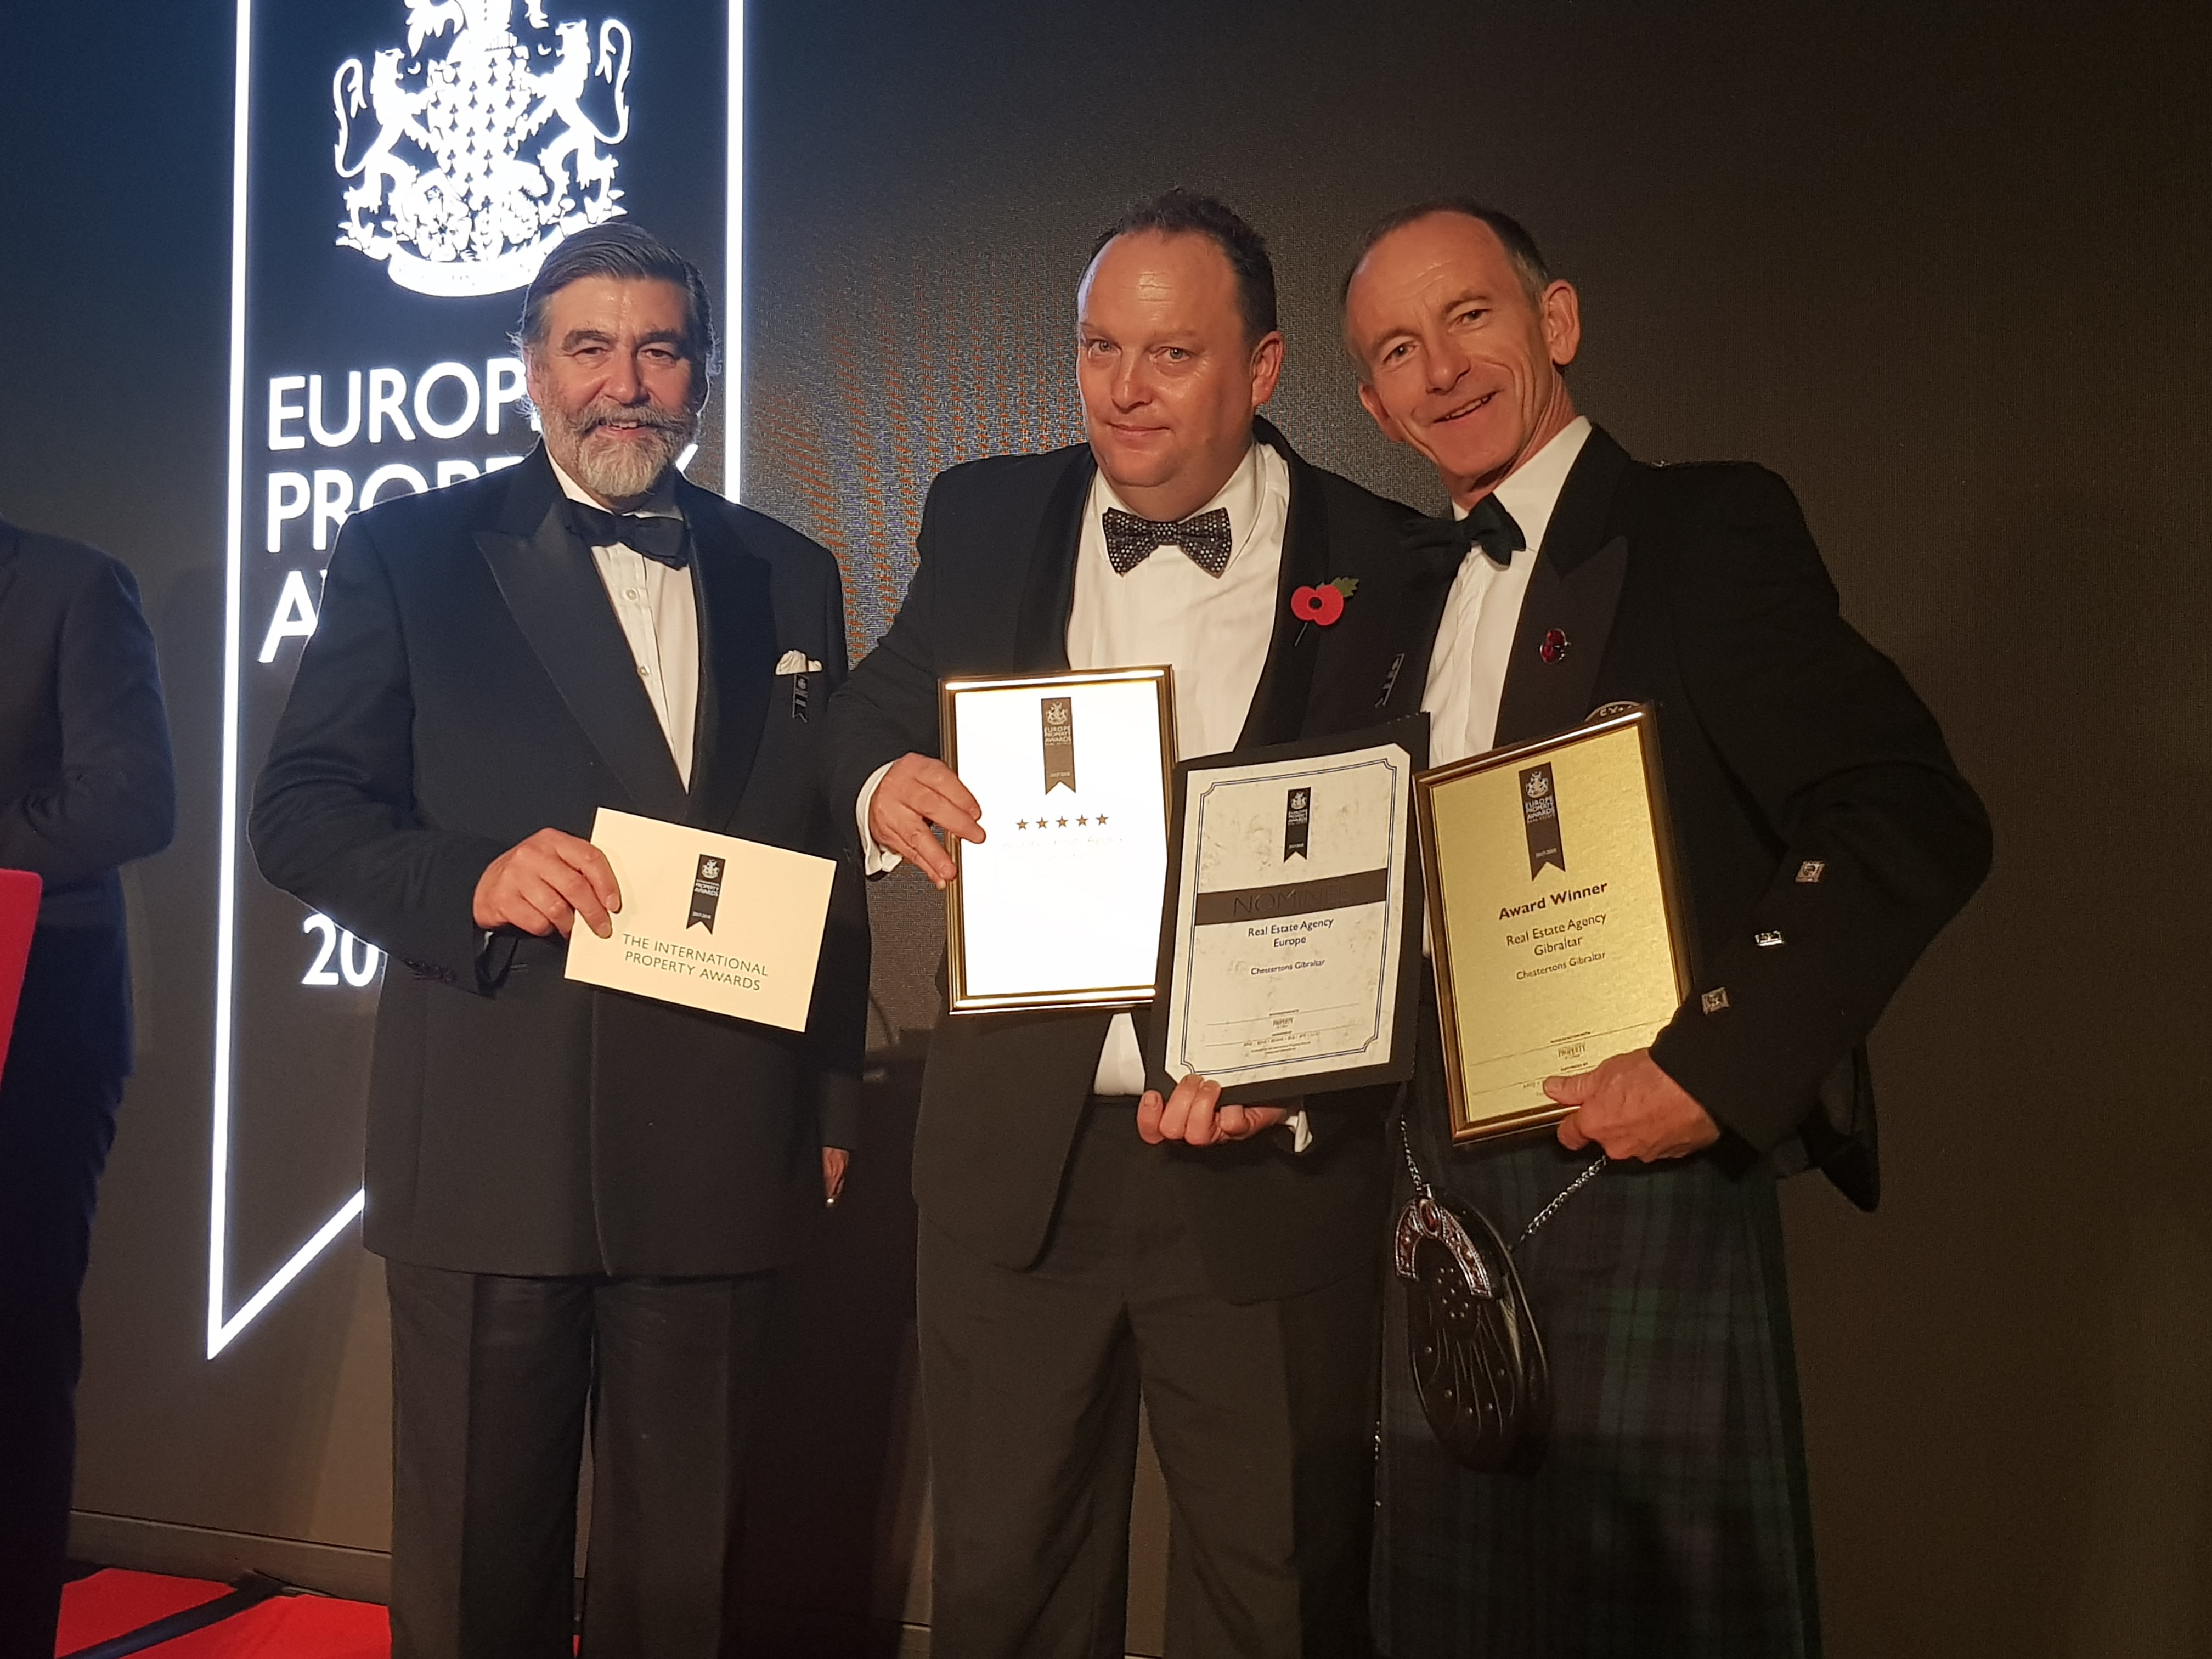 Chestertons wins 'Best Estate Agency in Gibraltar for 2017/18' at The European Property Awards  Image